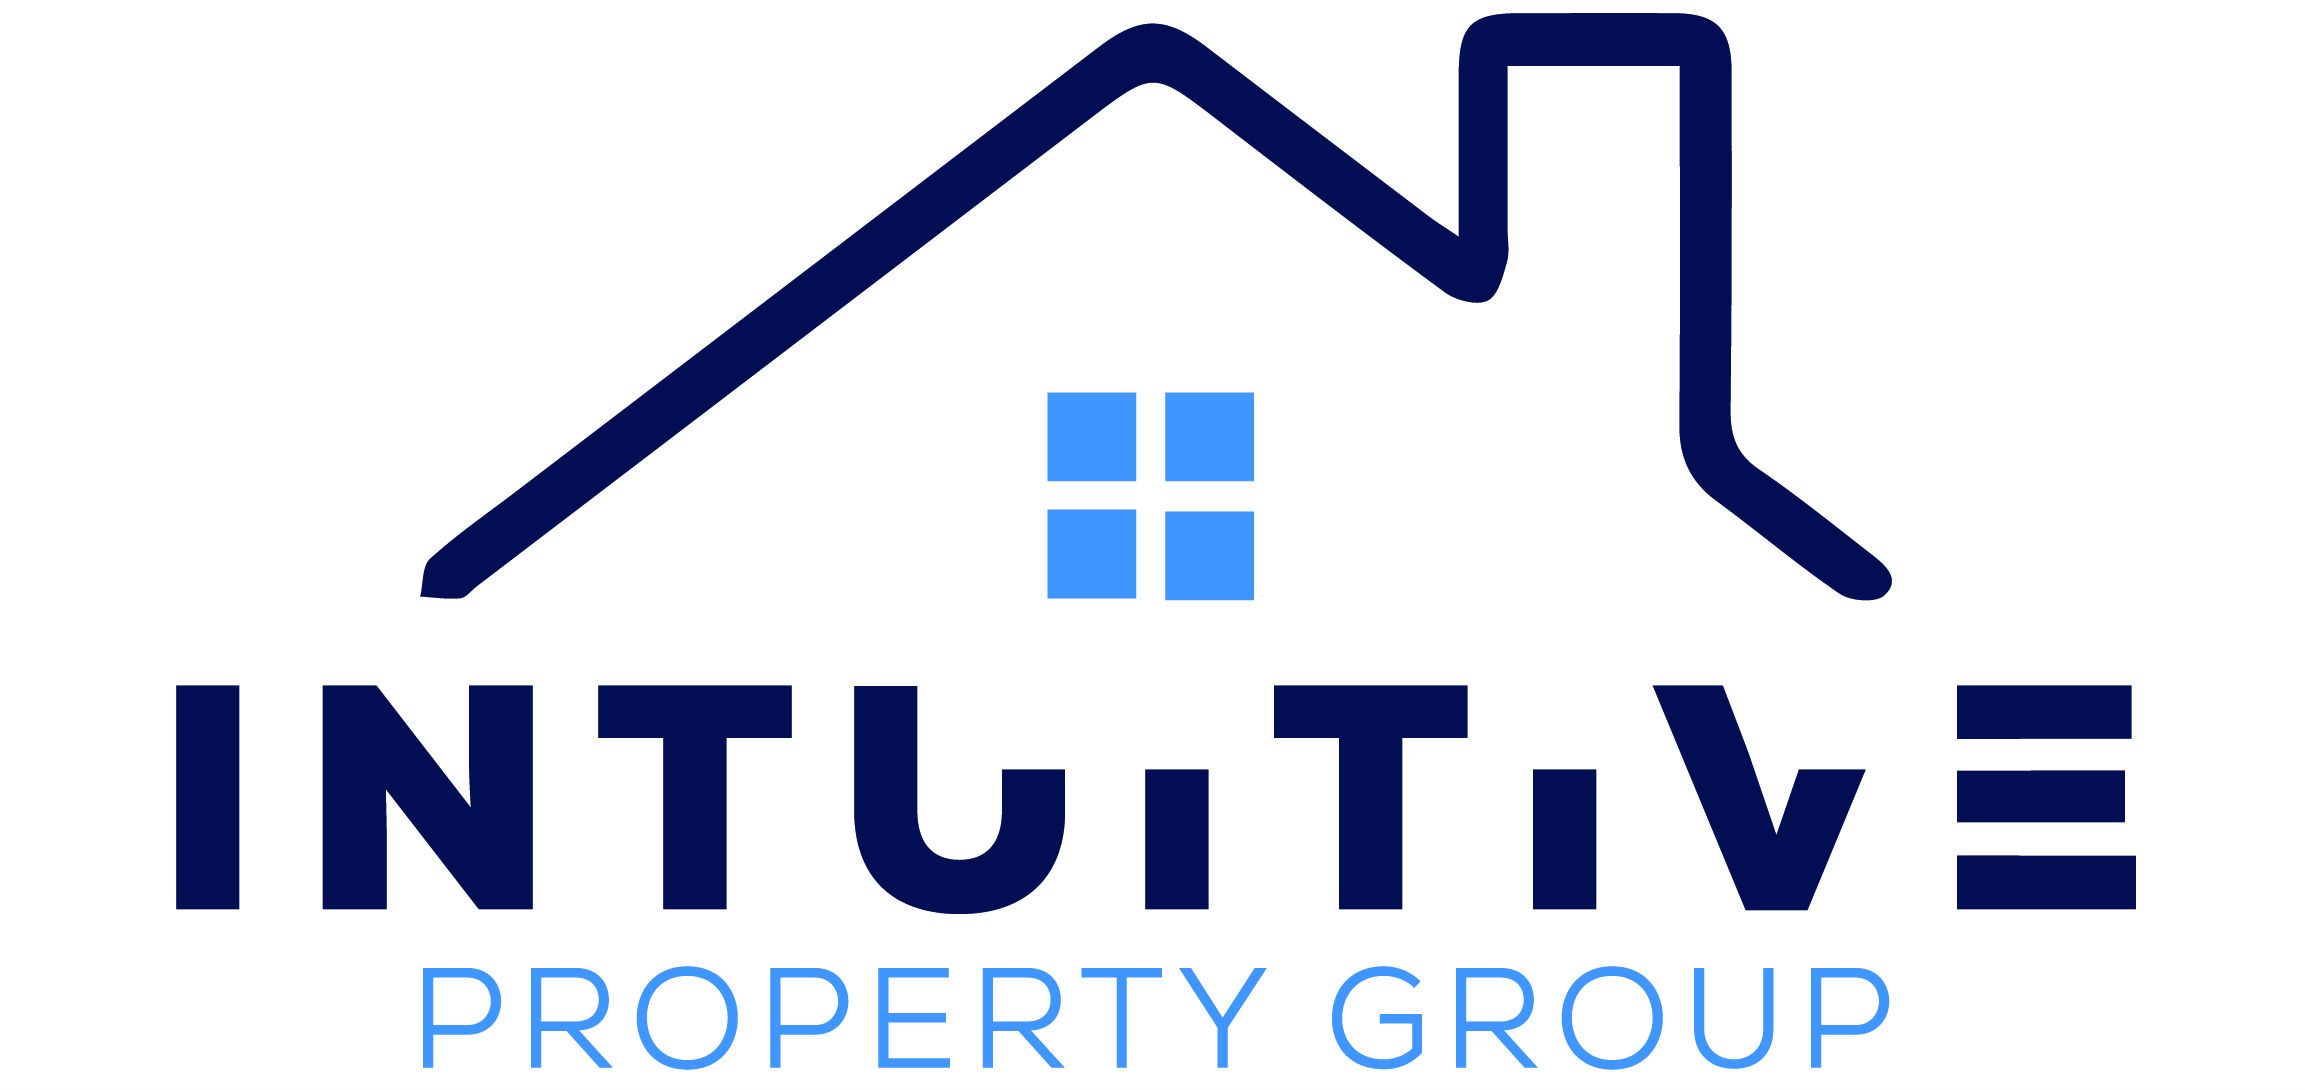 Intuitive Property Group